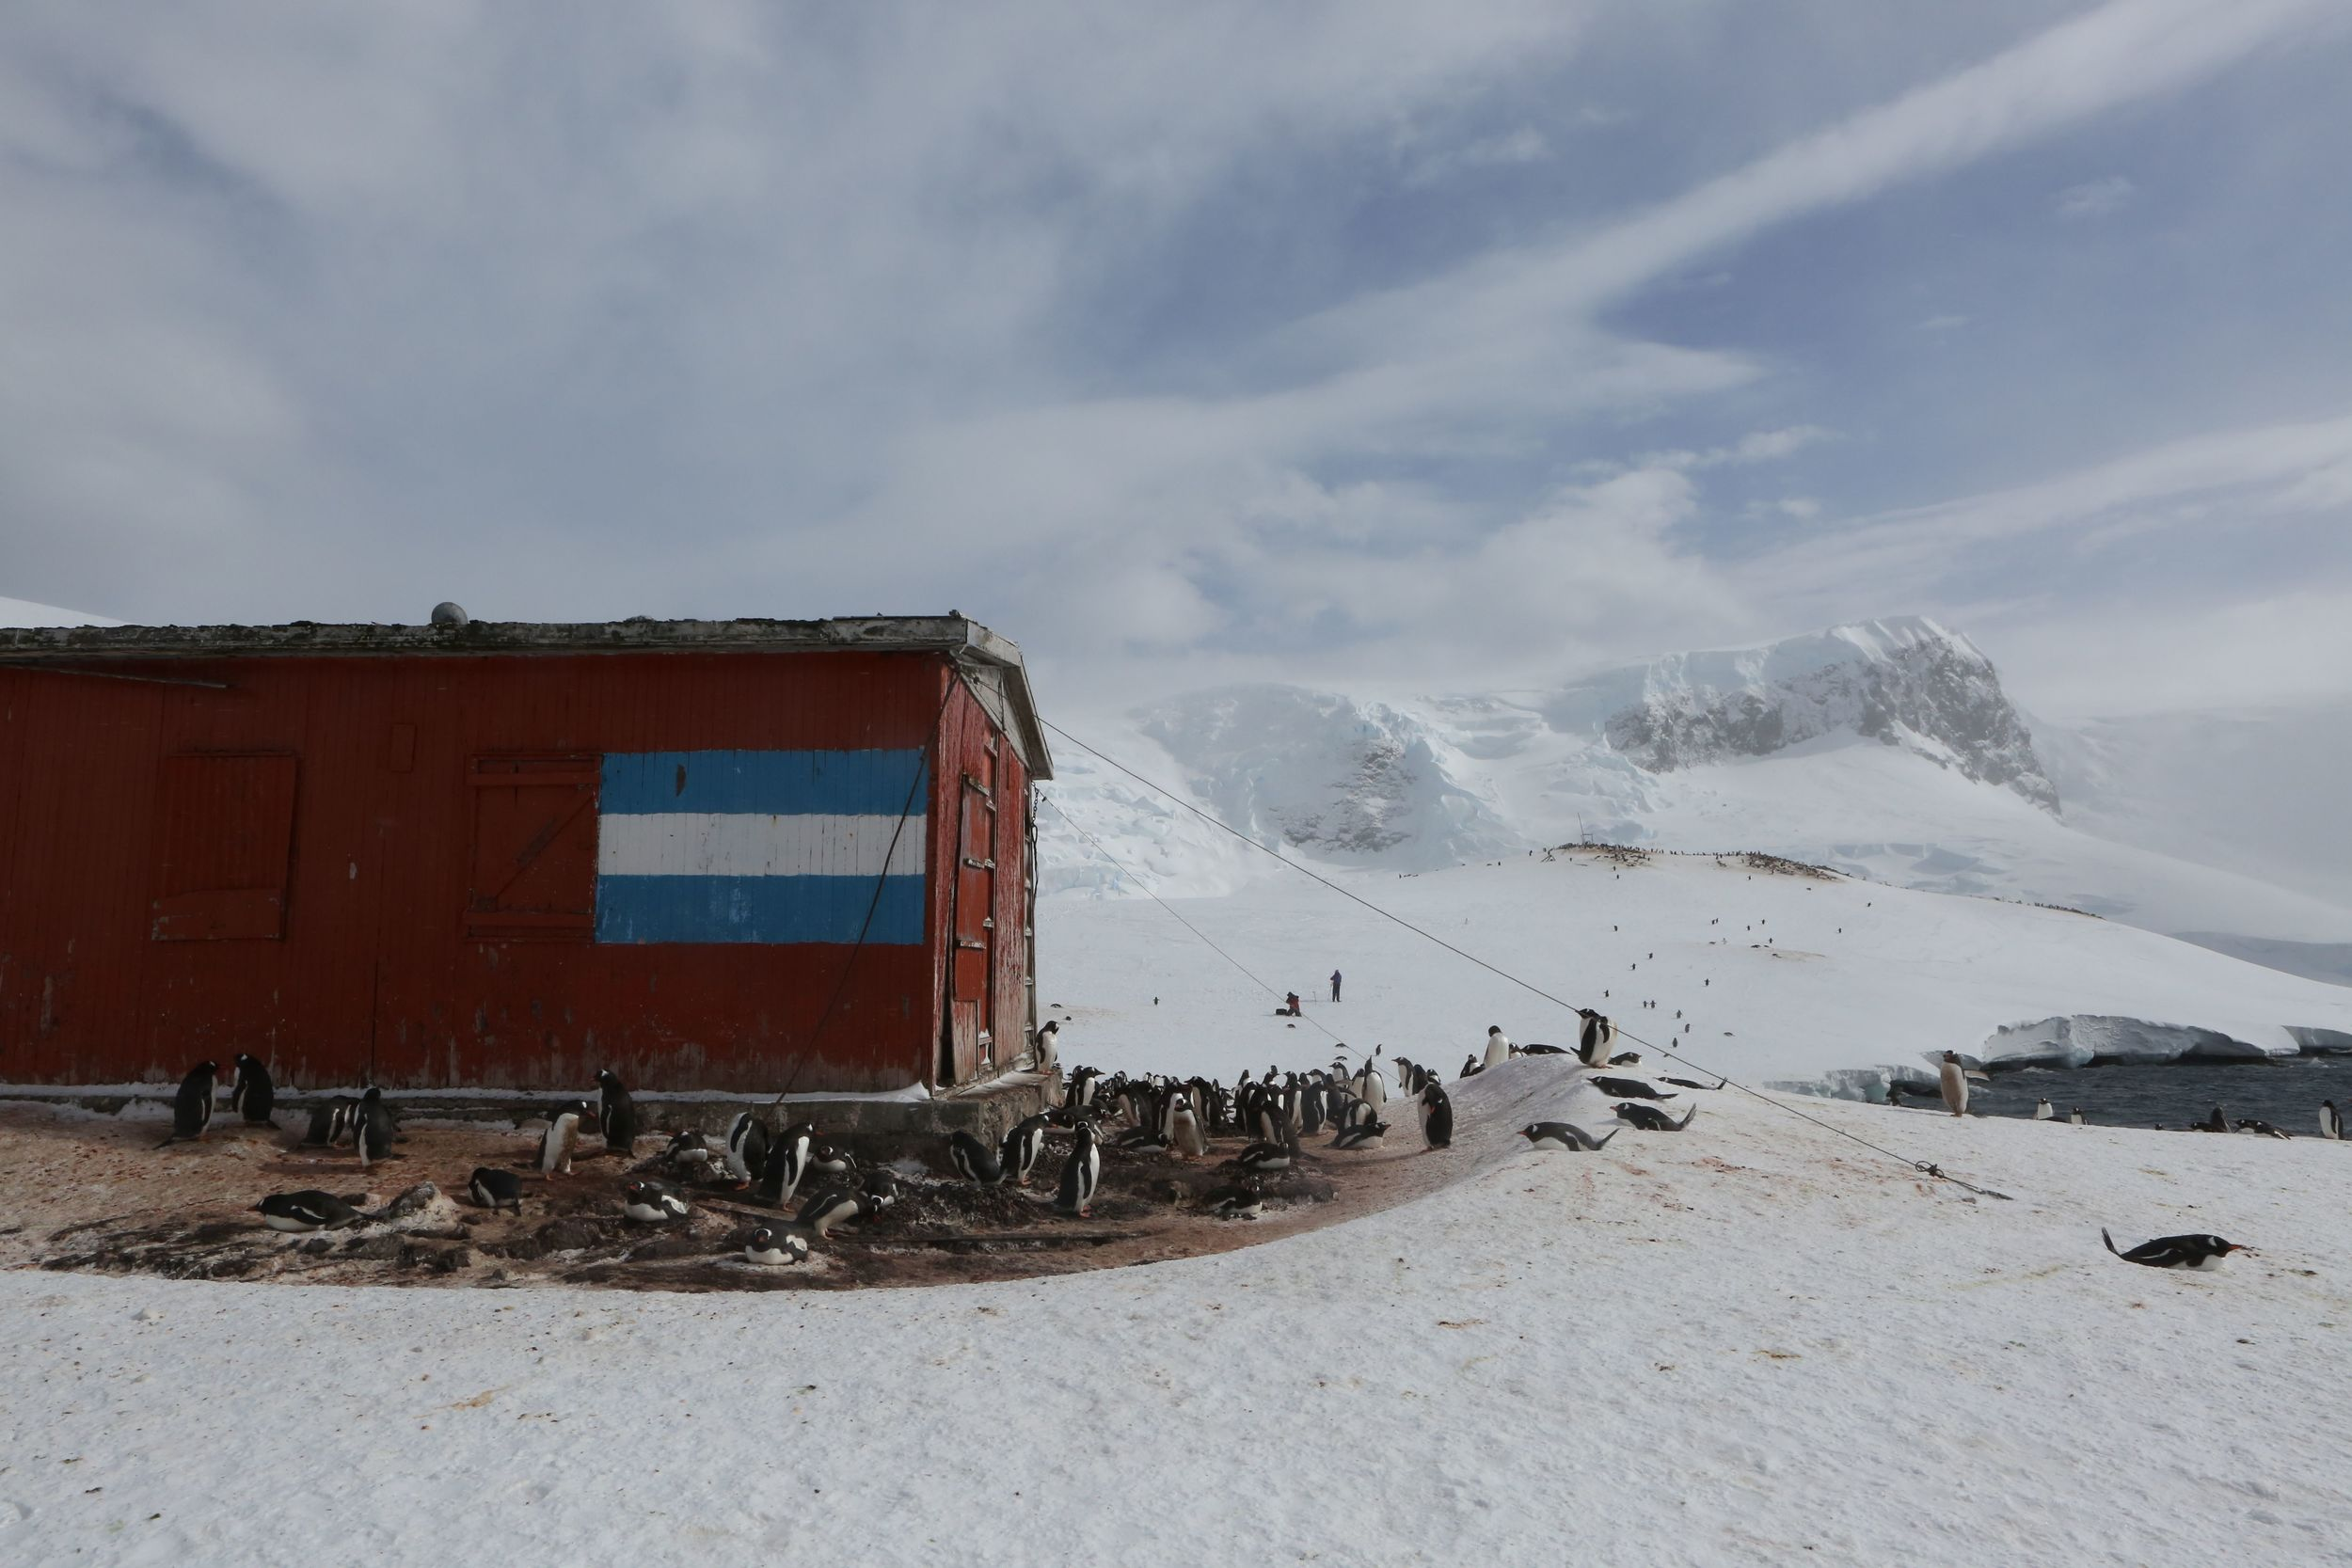 This was an emergency hut—the first we'd seen on our trip through thousands of almost completely human-free miles. That is an Argentinian flag painted on the side, a reflection of the closest neighbor on the South American continent.